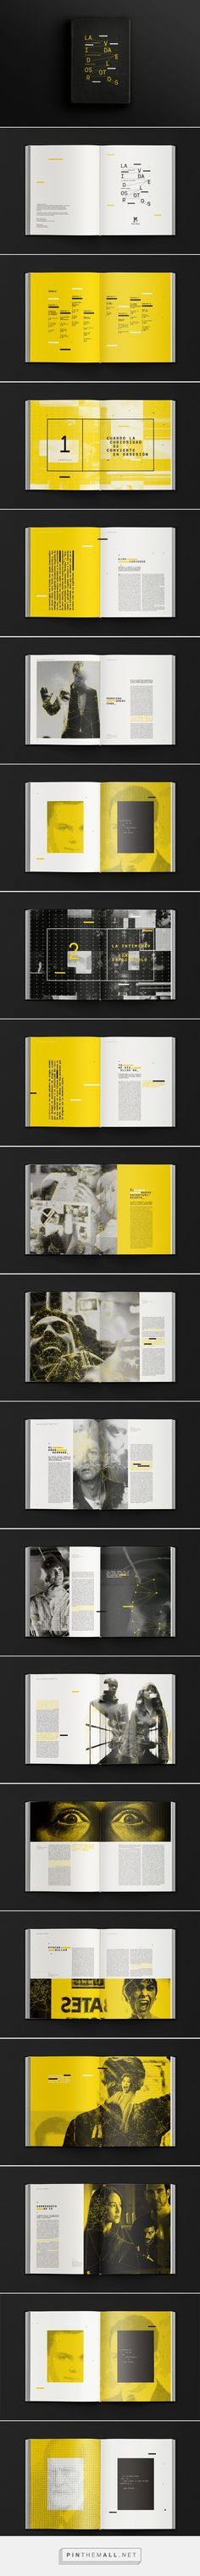 La vida de los otros on Behance... - a grouped images picture - Pin Them All